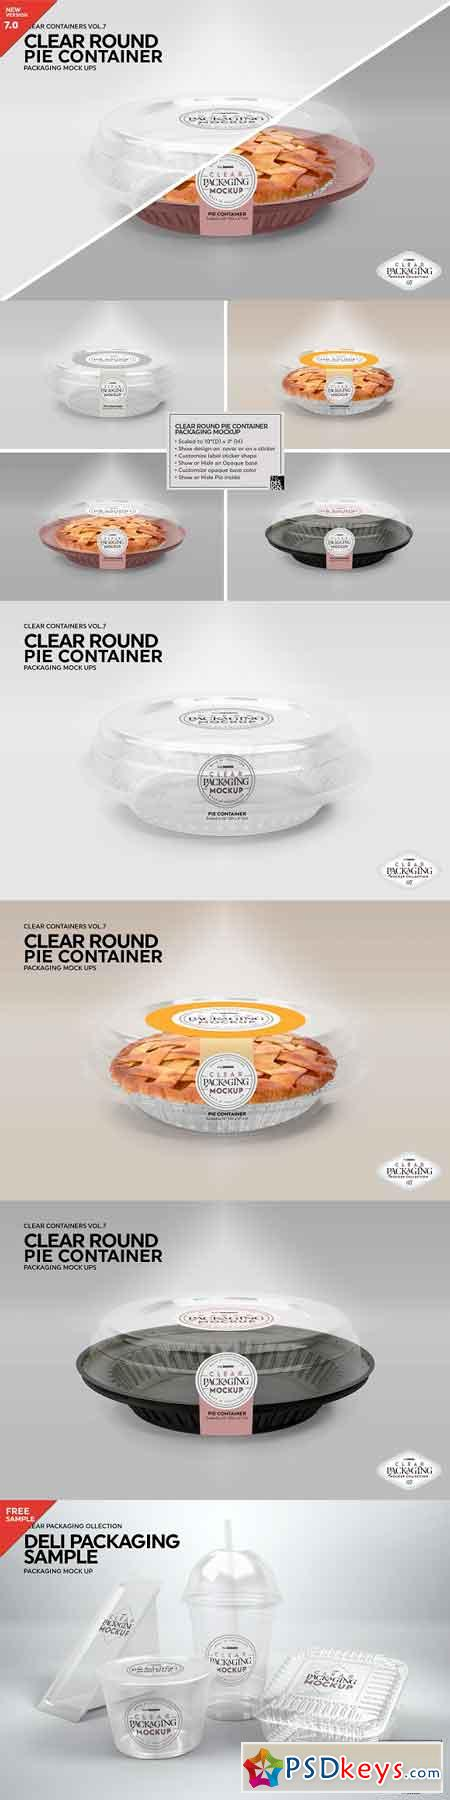 Clear Pie Container Packaging Mockup 3170139